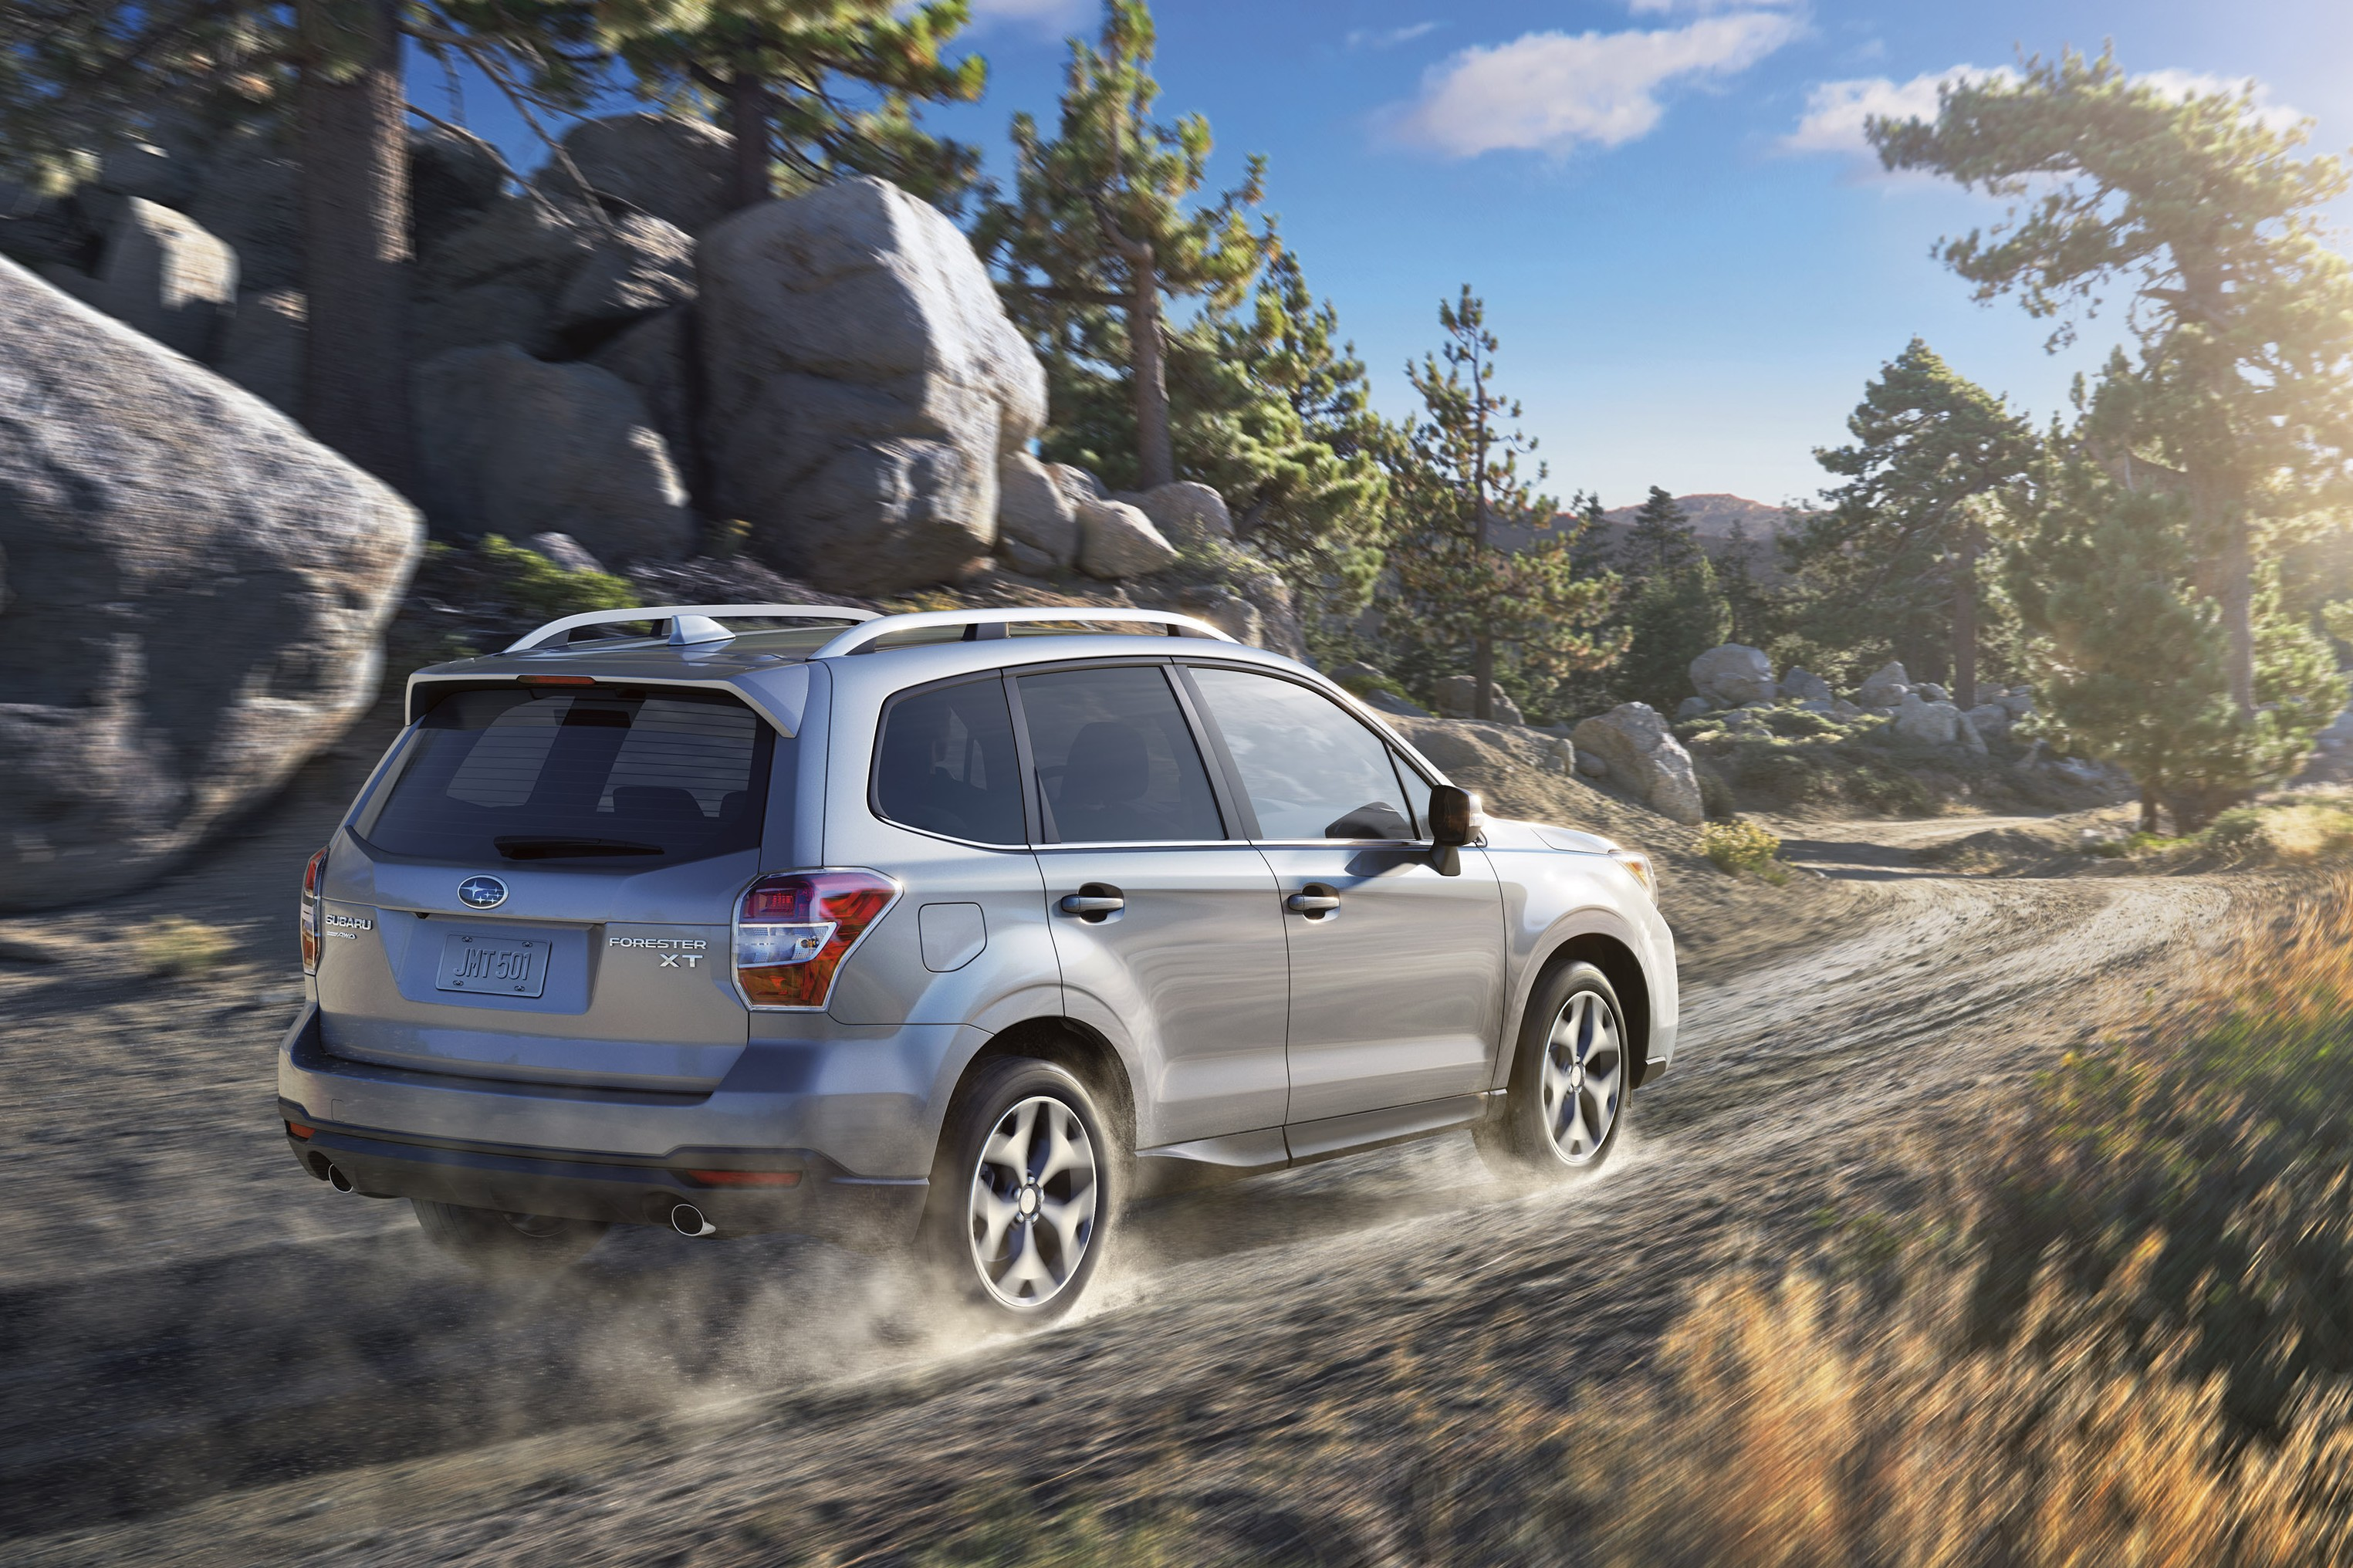 subaru announces pricing for 2016 forester crossover. Black Bedroom Furniture Sets. Home Design Ideas